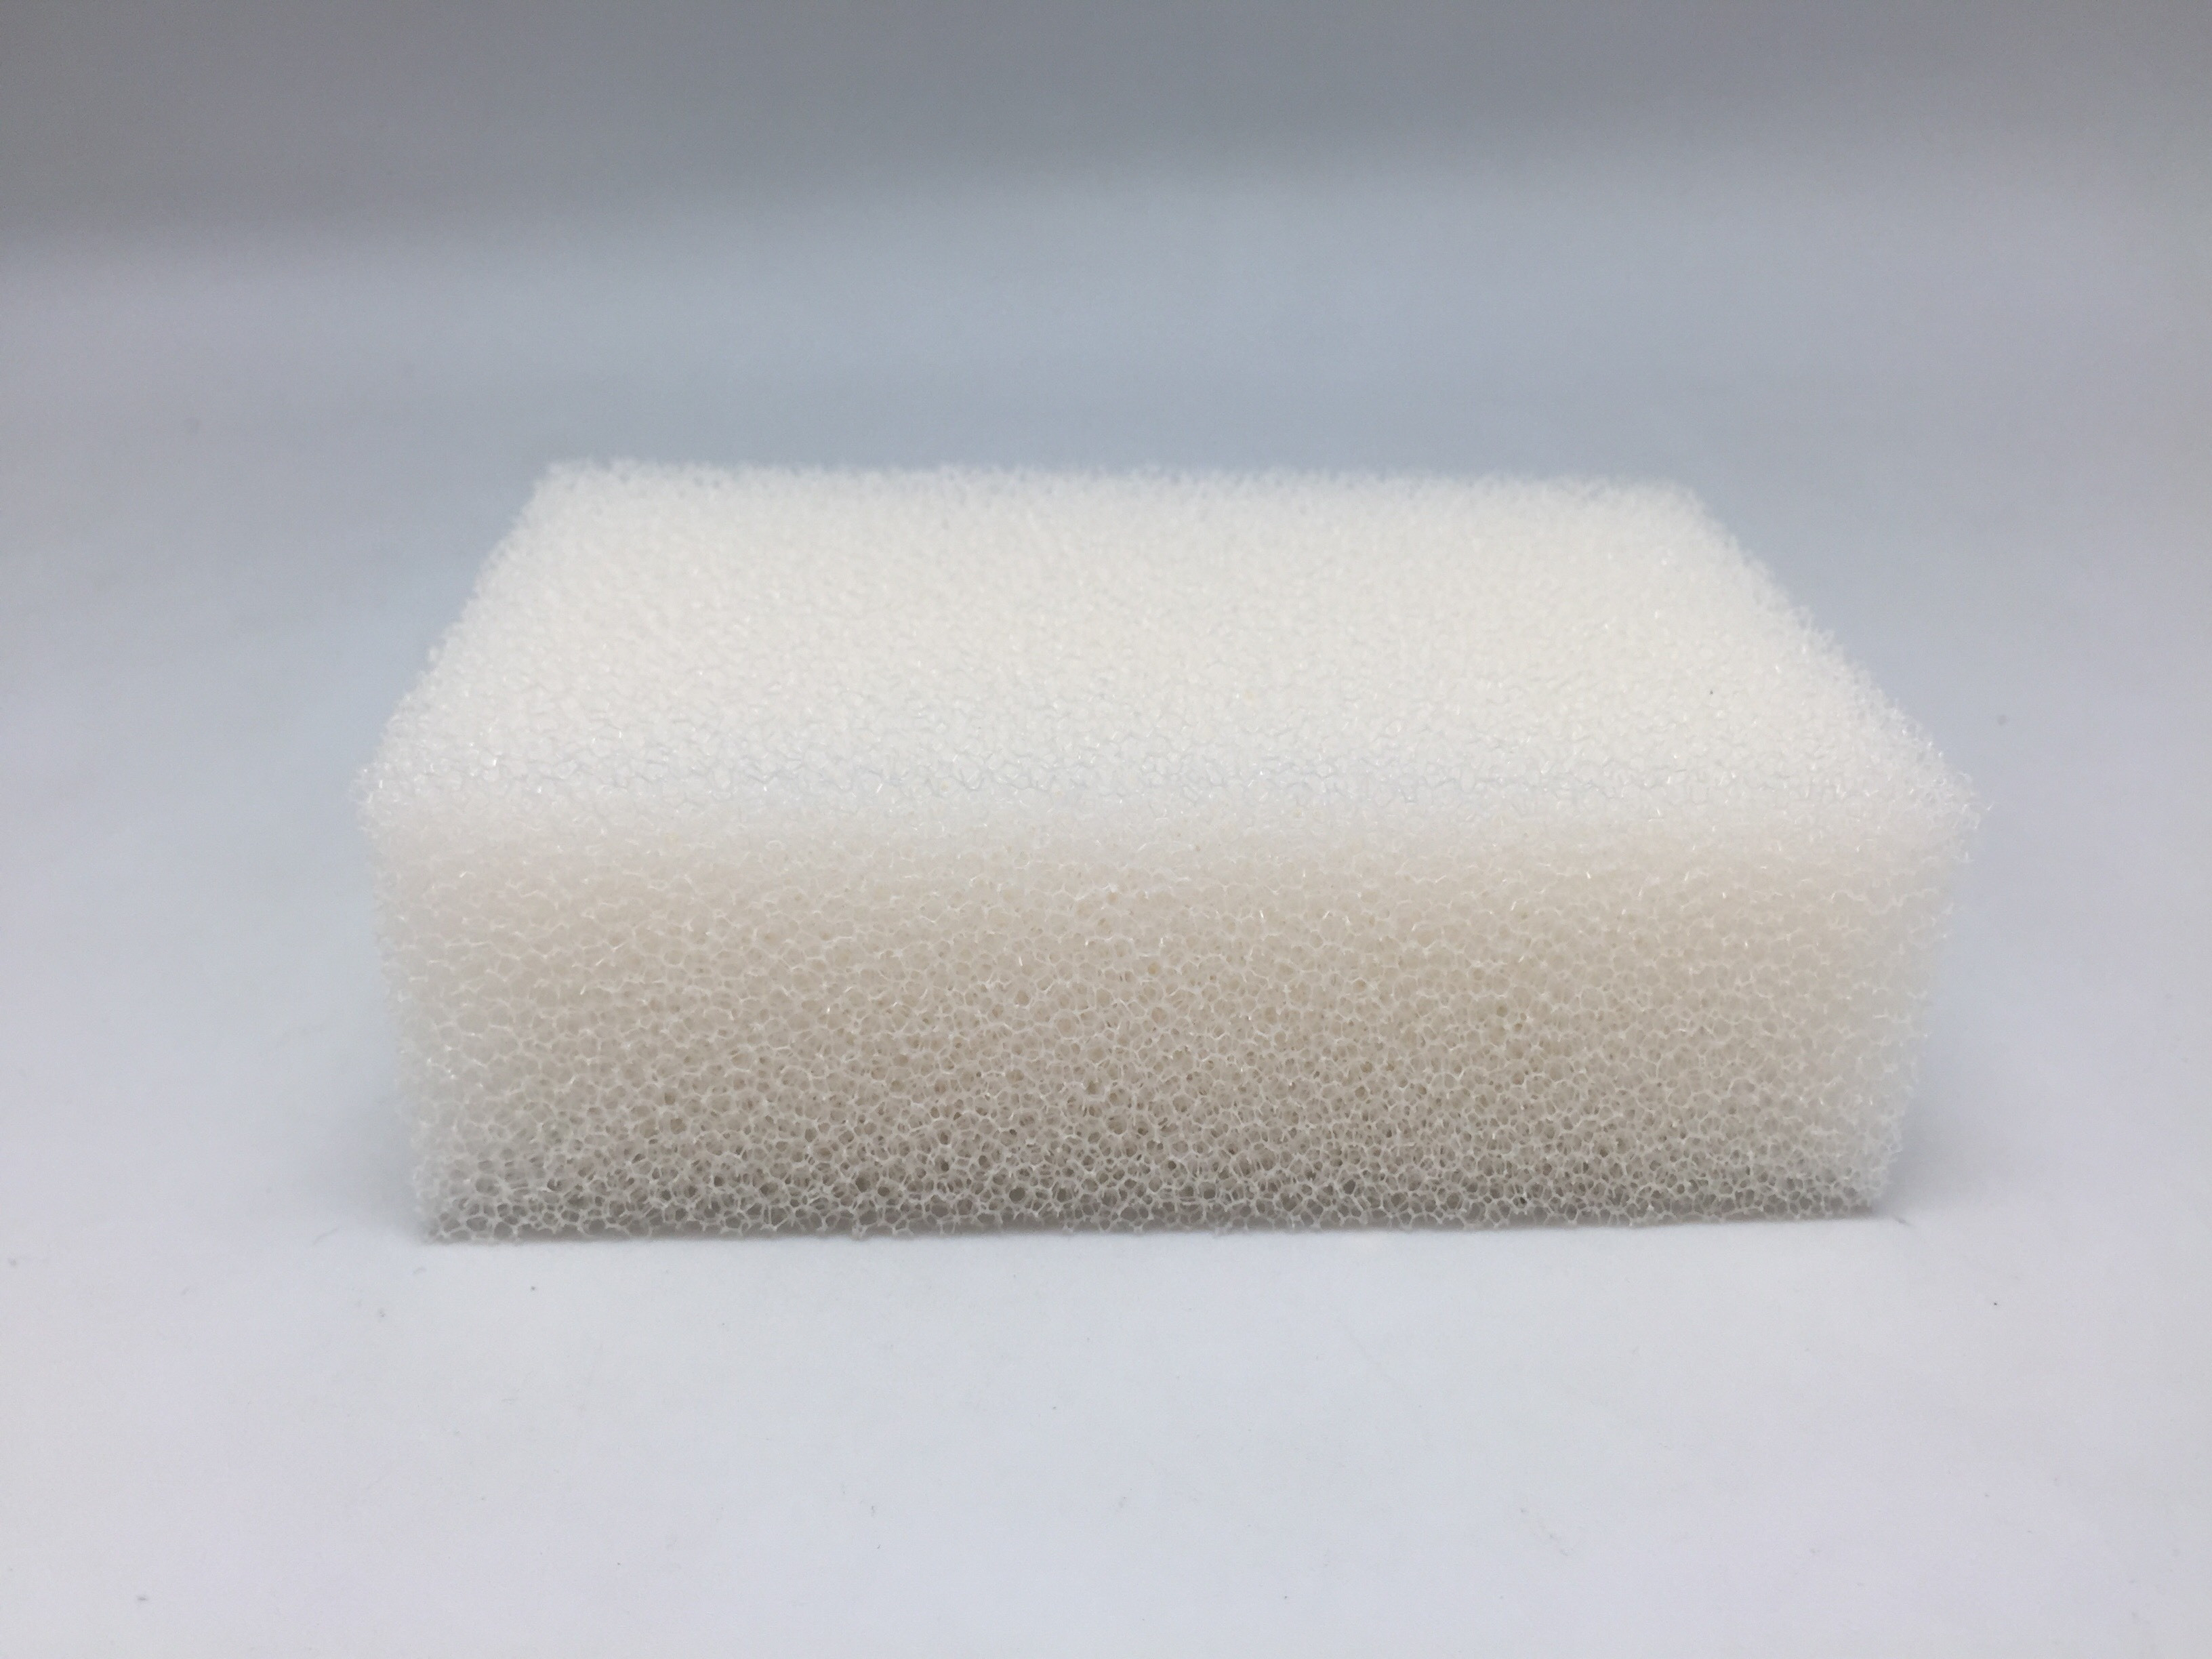 Grech Coarse Sponge Replacement for CBG-800 Filter Gallery